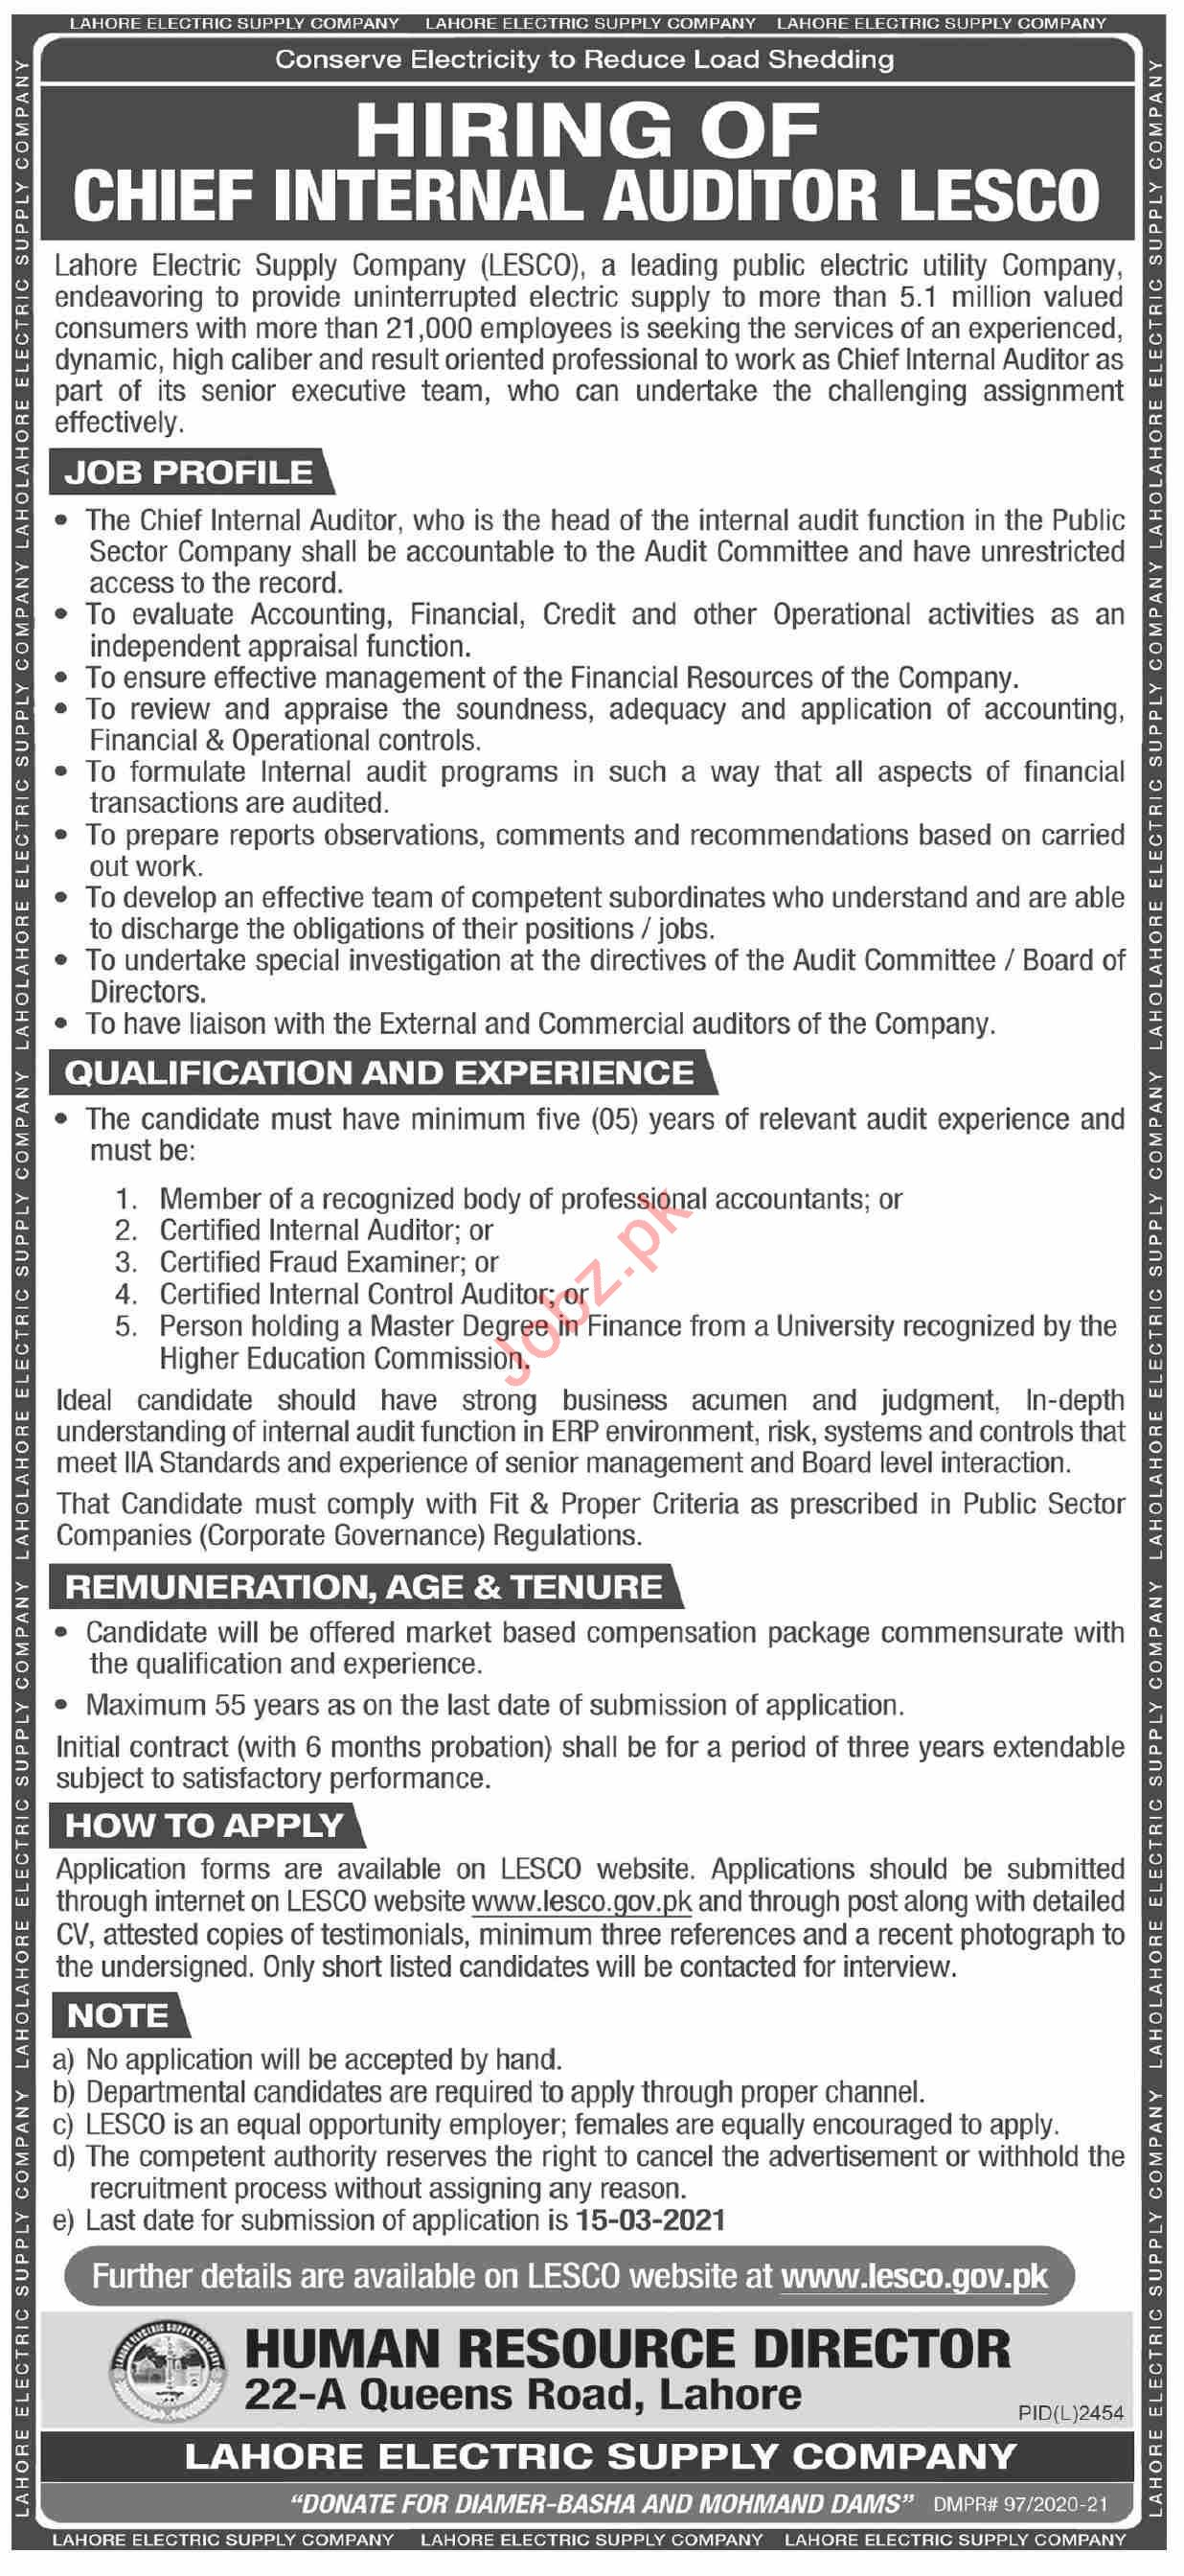 Lahore Electric Supply Company LESCO Jobs 2021 for Auditor